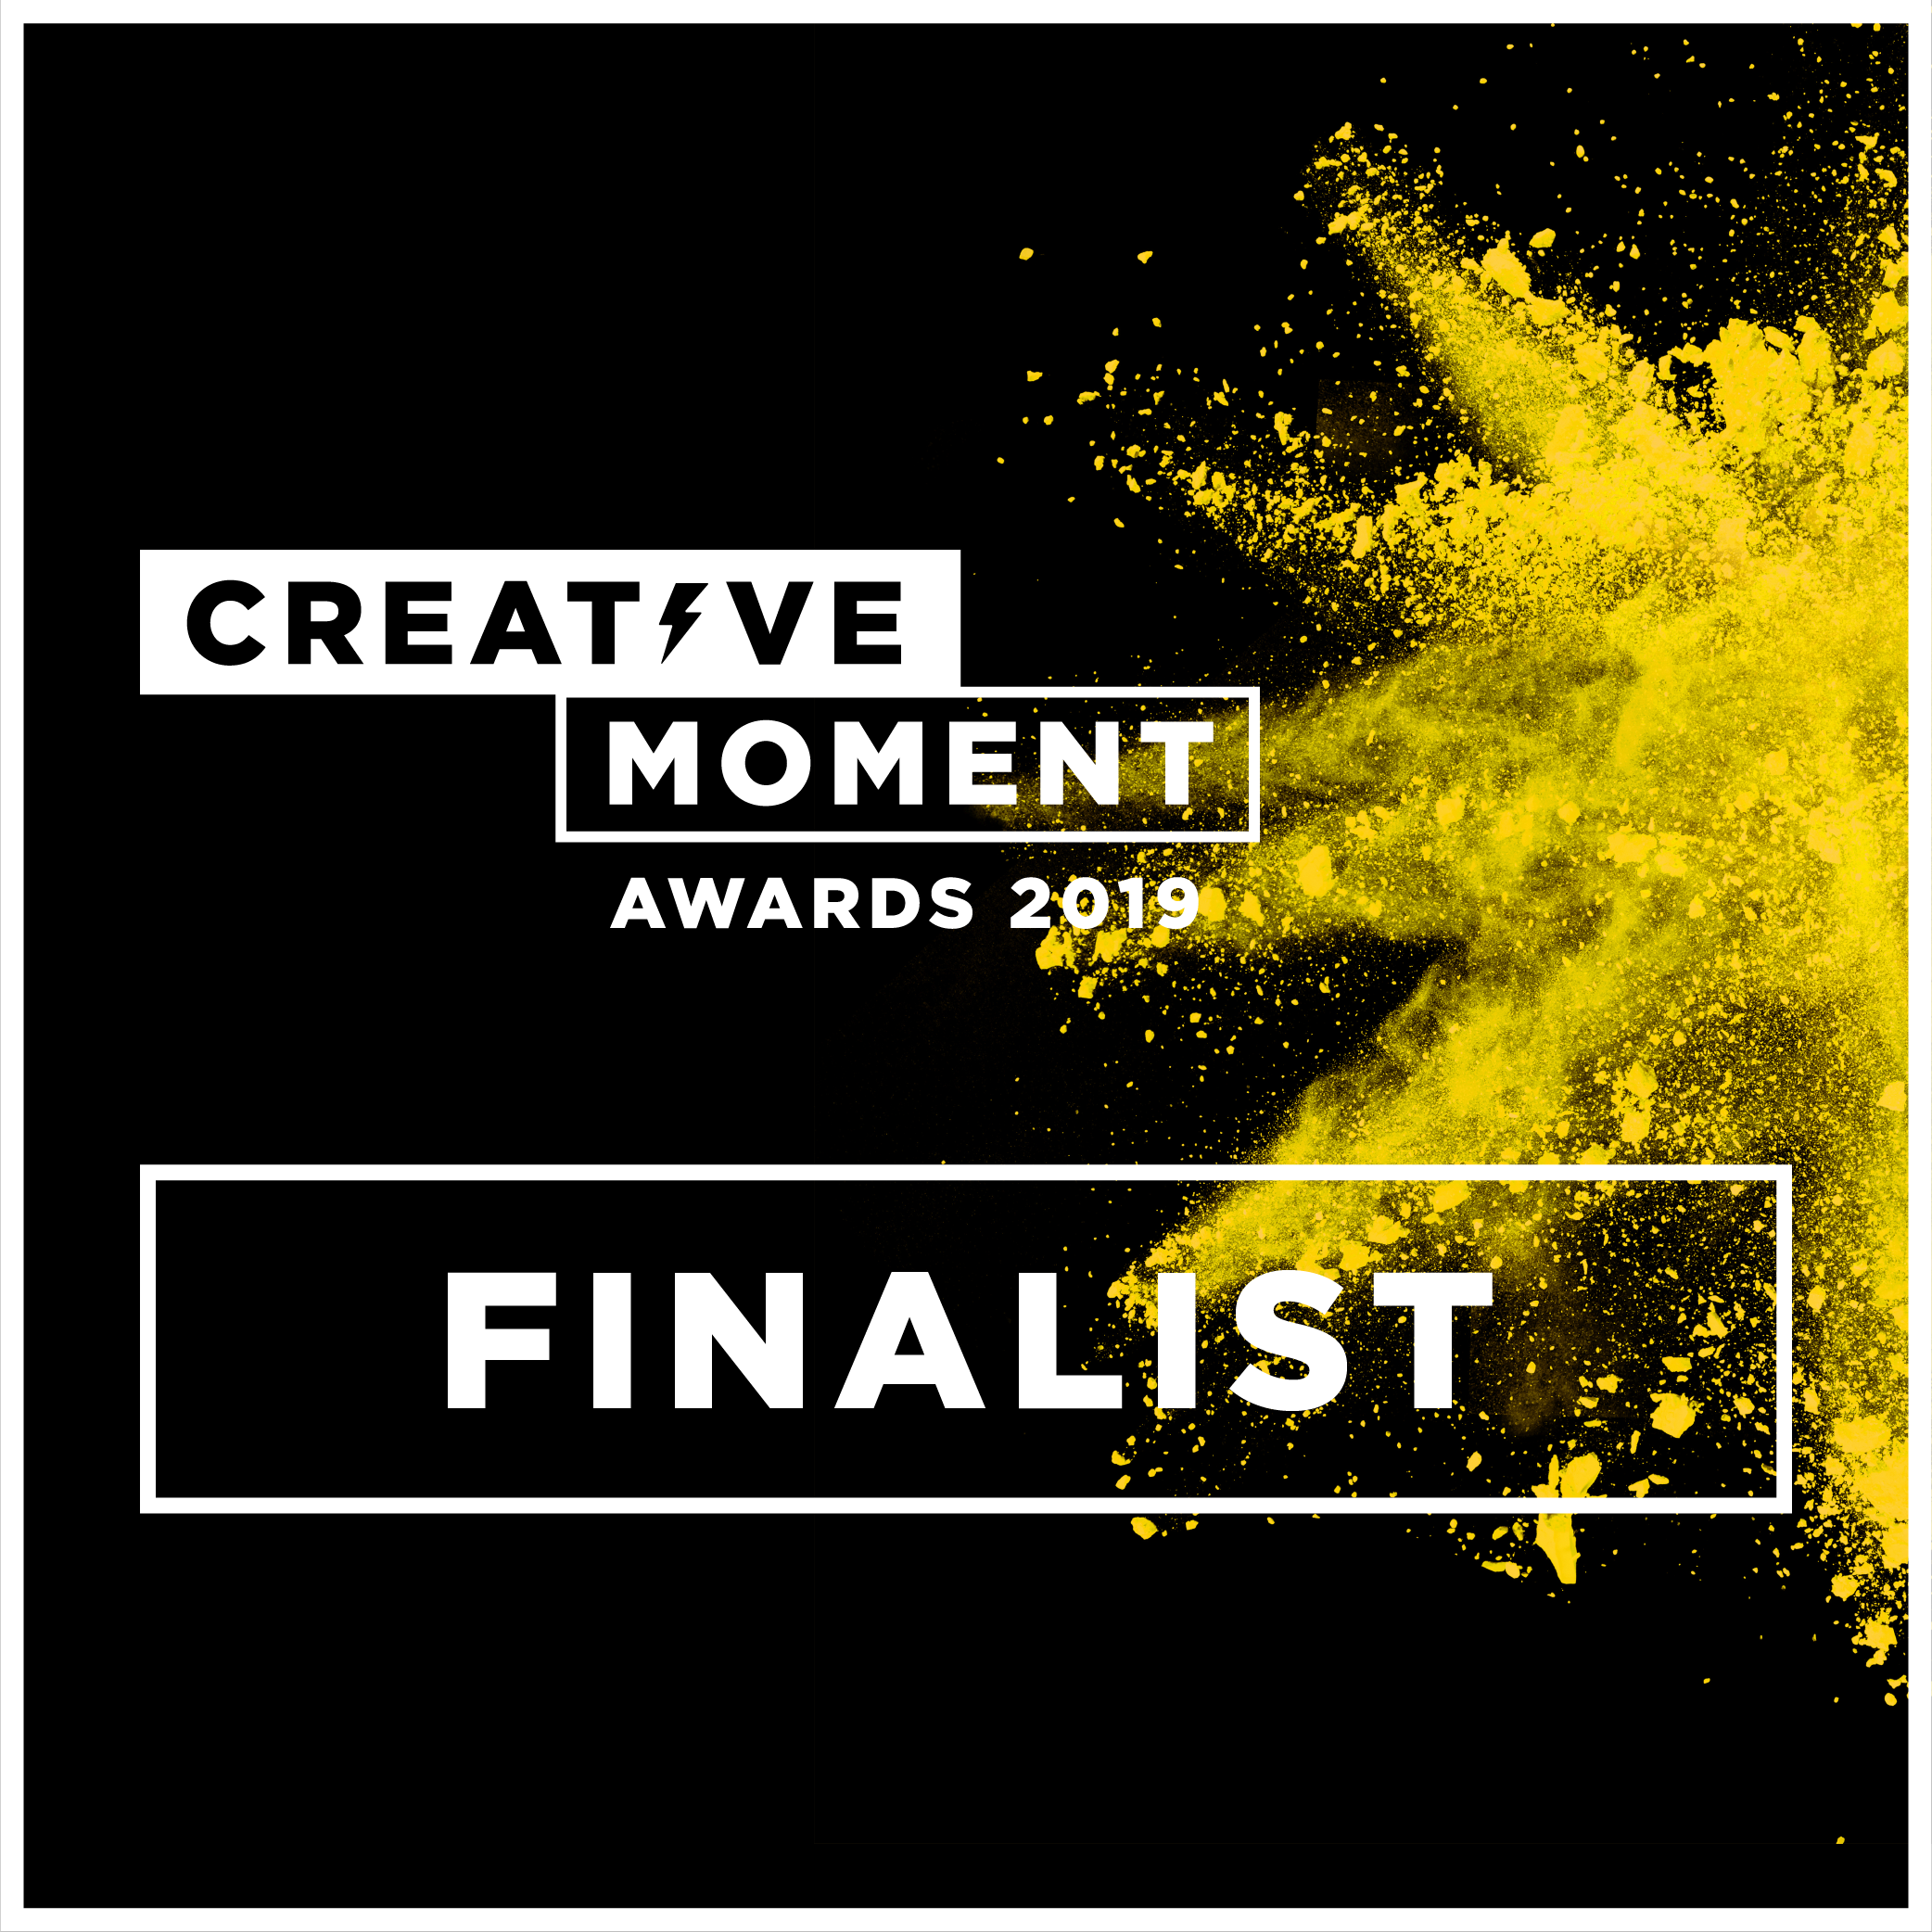 Creative Moment Awards 2019 Finalist Badge Image.png